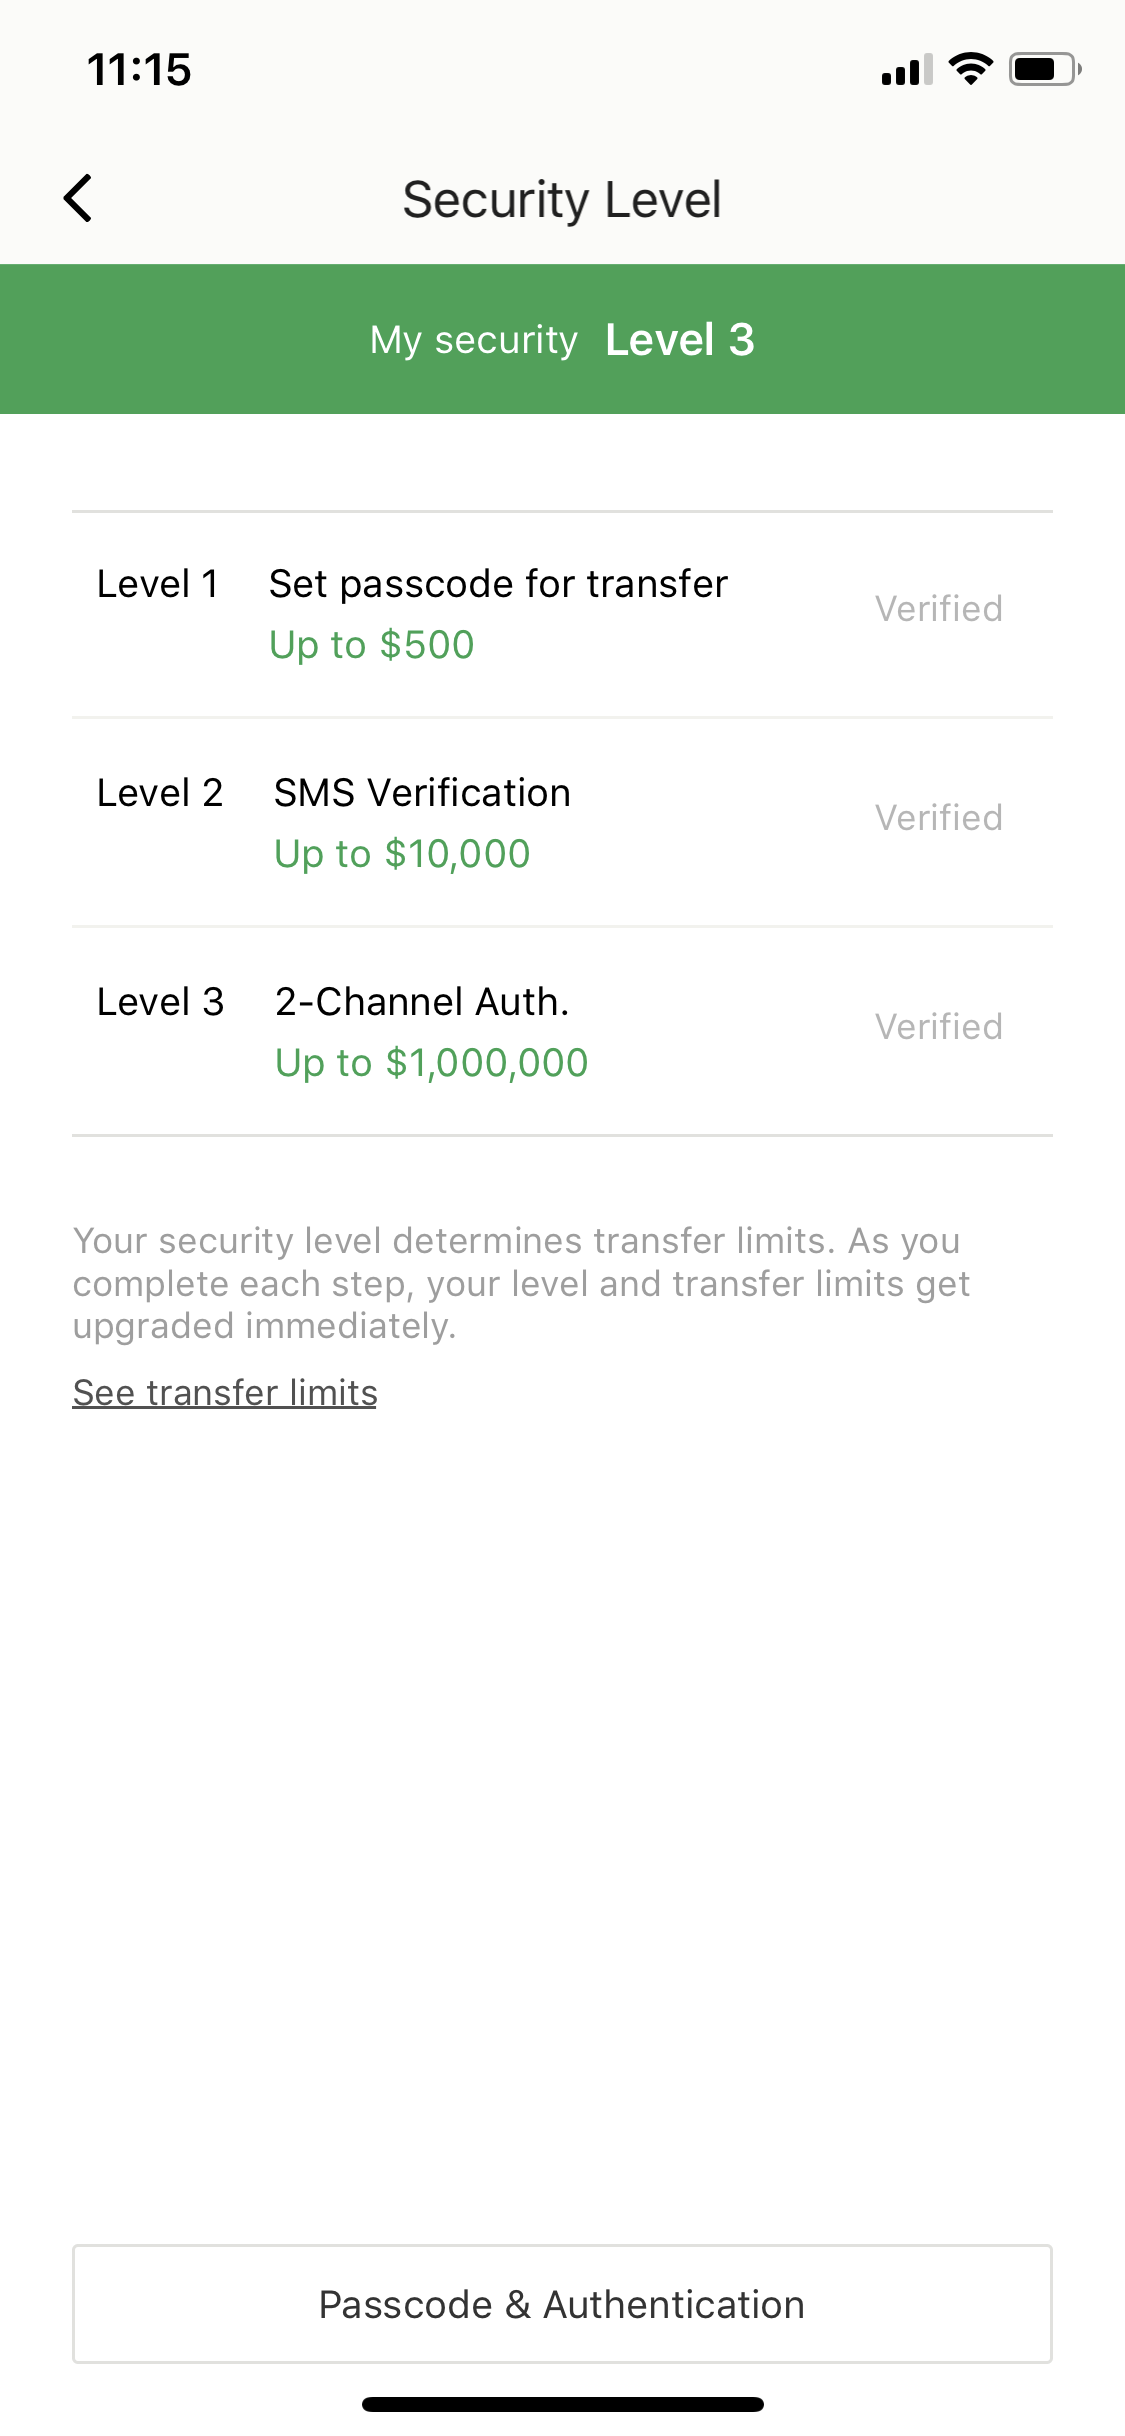 4. Security level and Verification